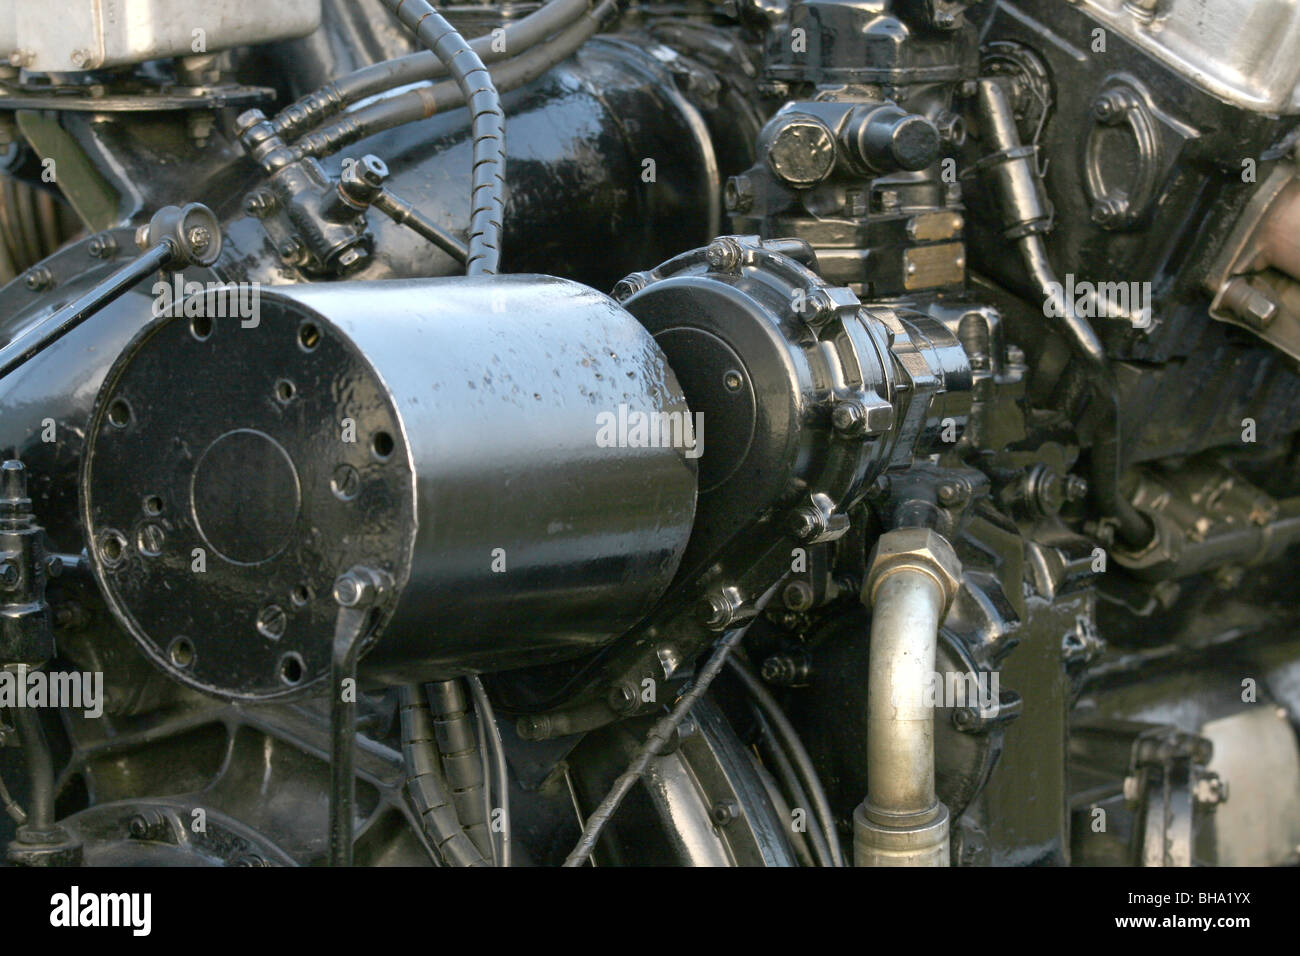 Detail Of The Rolls Royce Merlin Engine Used In The